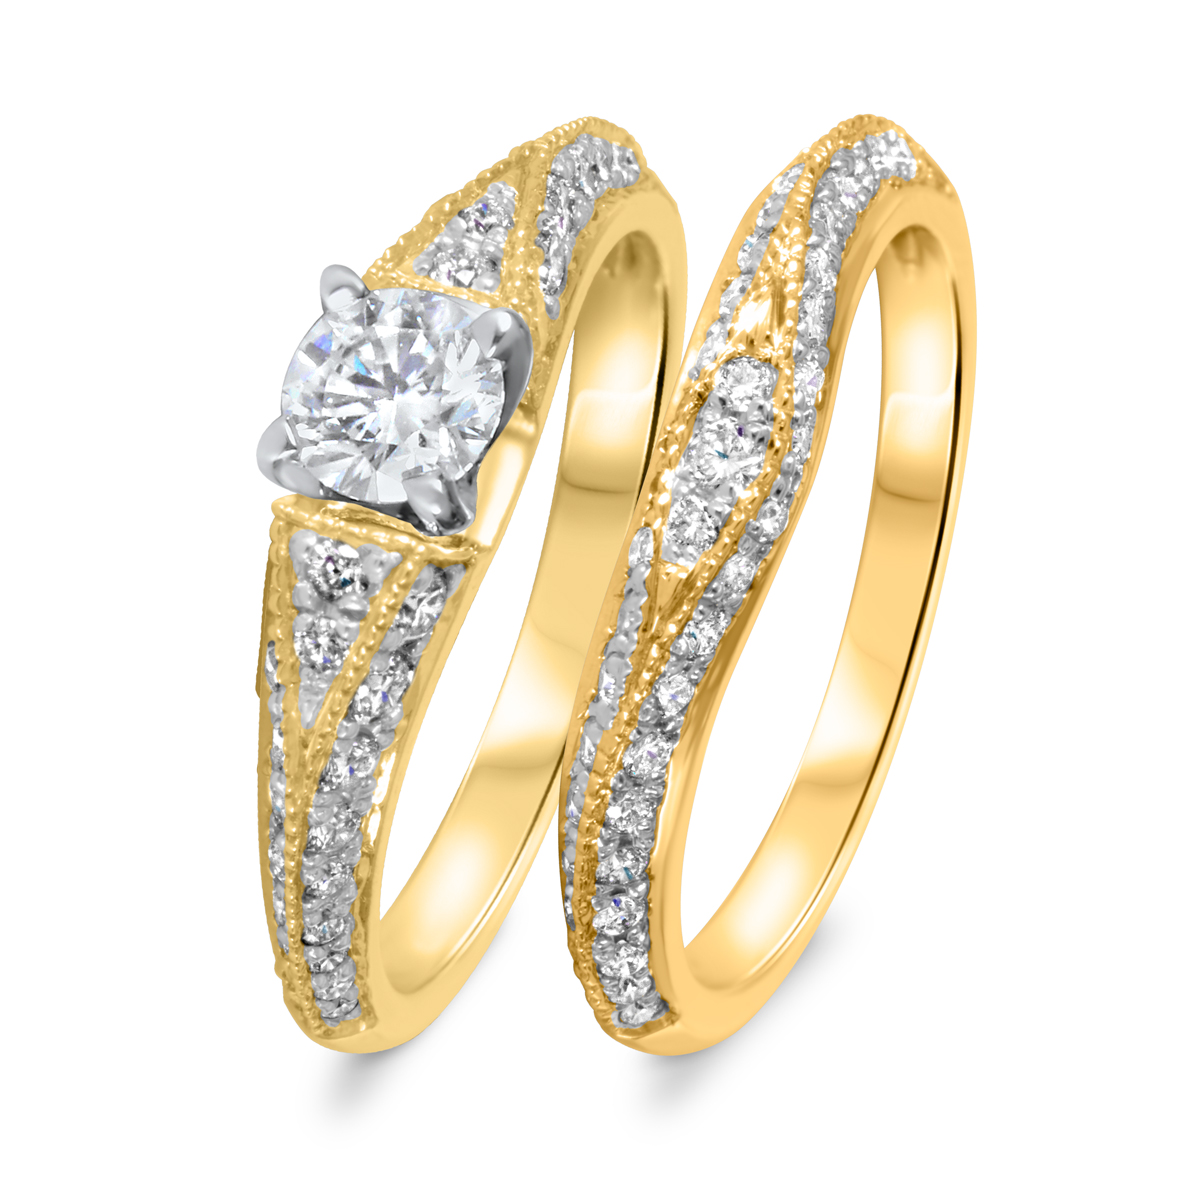 1 1/6 CT. T.W. Diamond Women's Bridal Wedding Ring Set 10K Yellow Gold